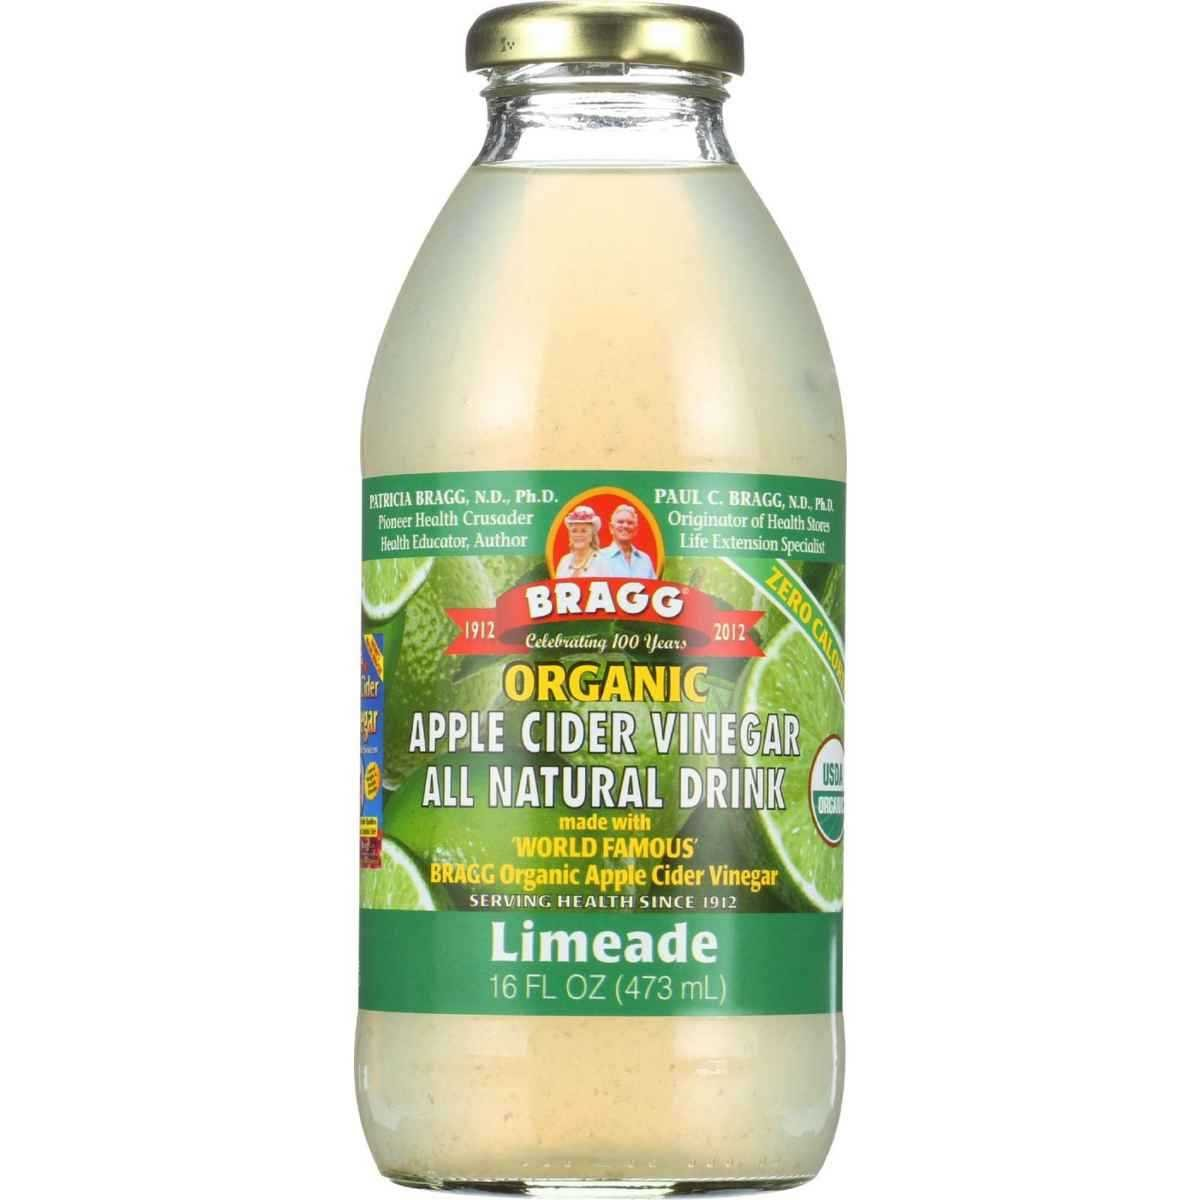 Bragg Organic Apple Cider Vinegar Limeade 16 Ounce New Arrival 473 Ml 12 Per Case Fruit Vinegars Grocery Gourmet Food